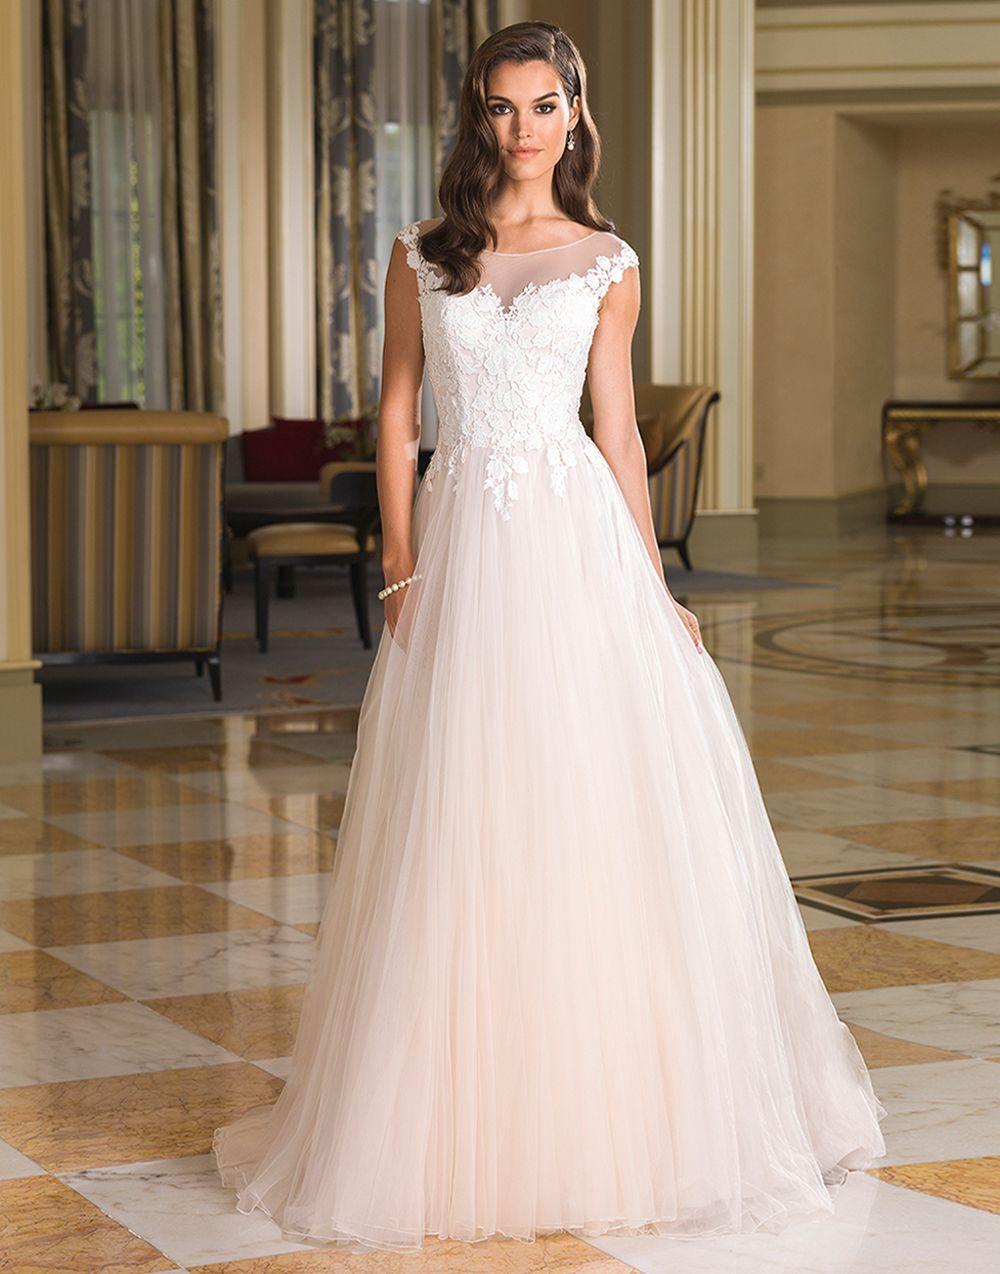 0968fc8fc5da0 Justin Alexander wedding dresses style 8852 The soft fabrication and lace  details of this vintage inspired ball gown with a Sabrina neckline